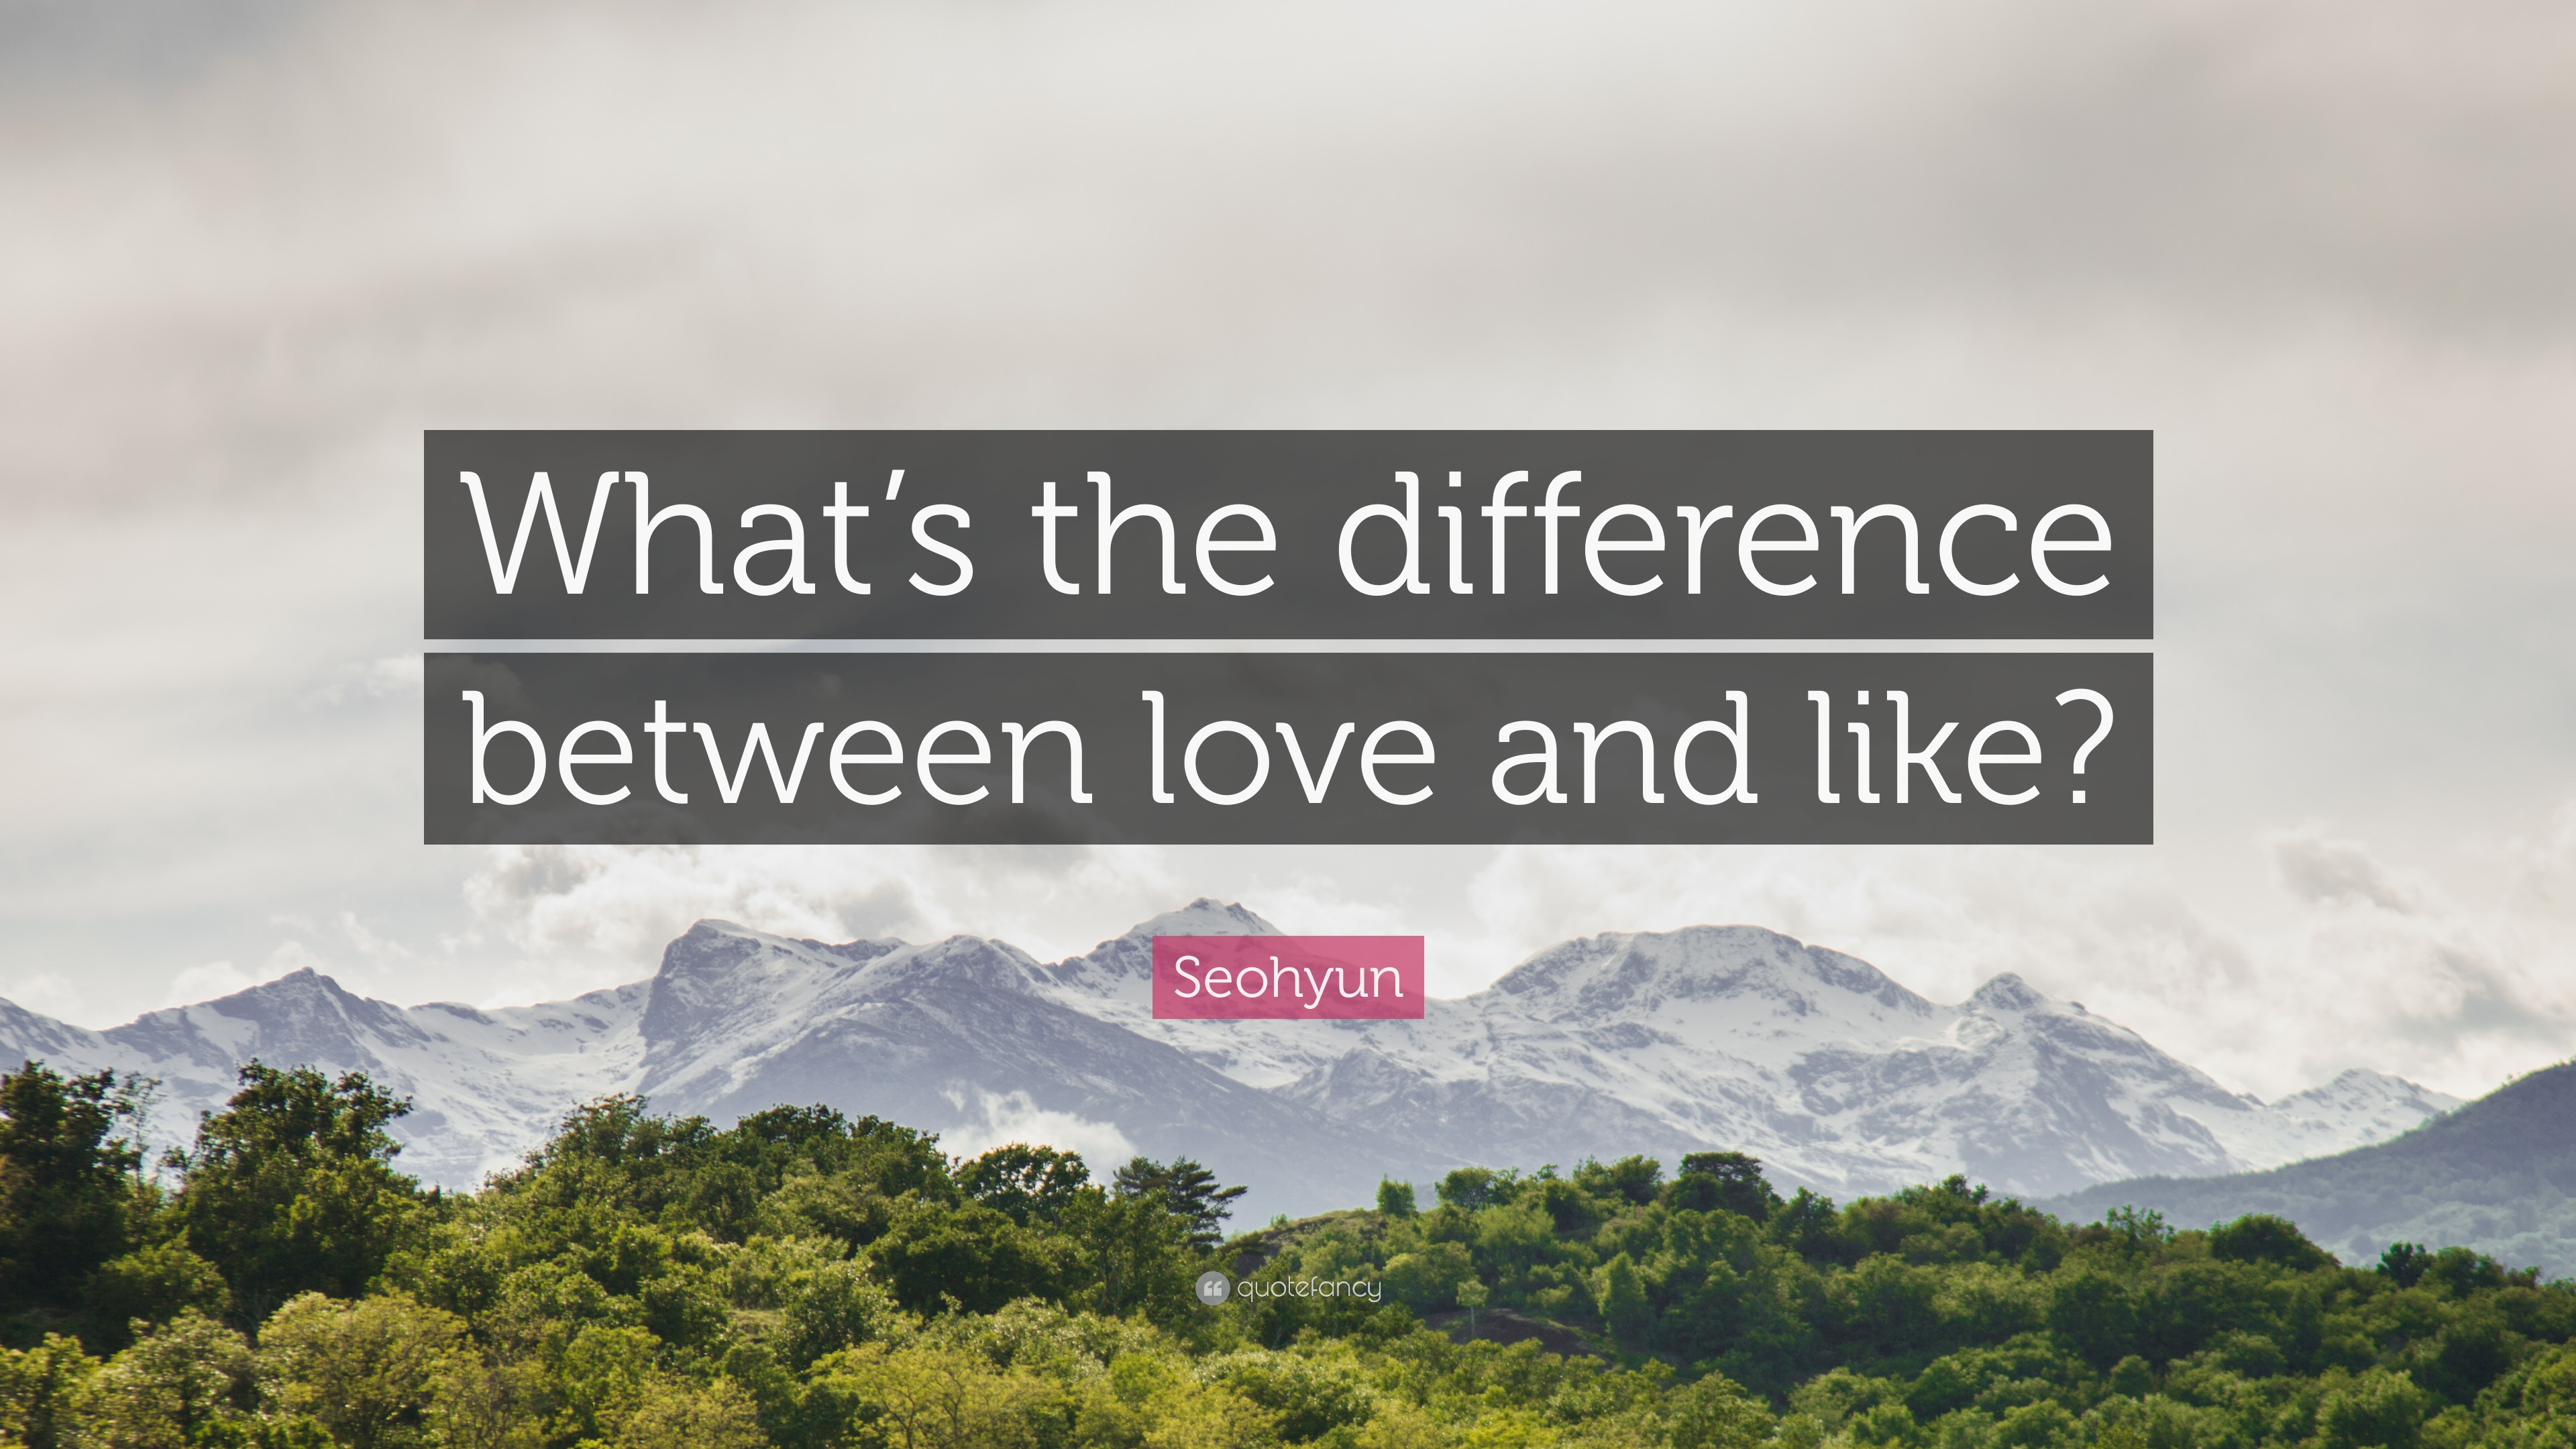 whats the difference between like and love